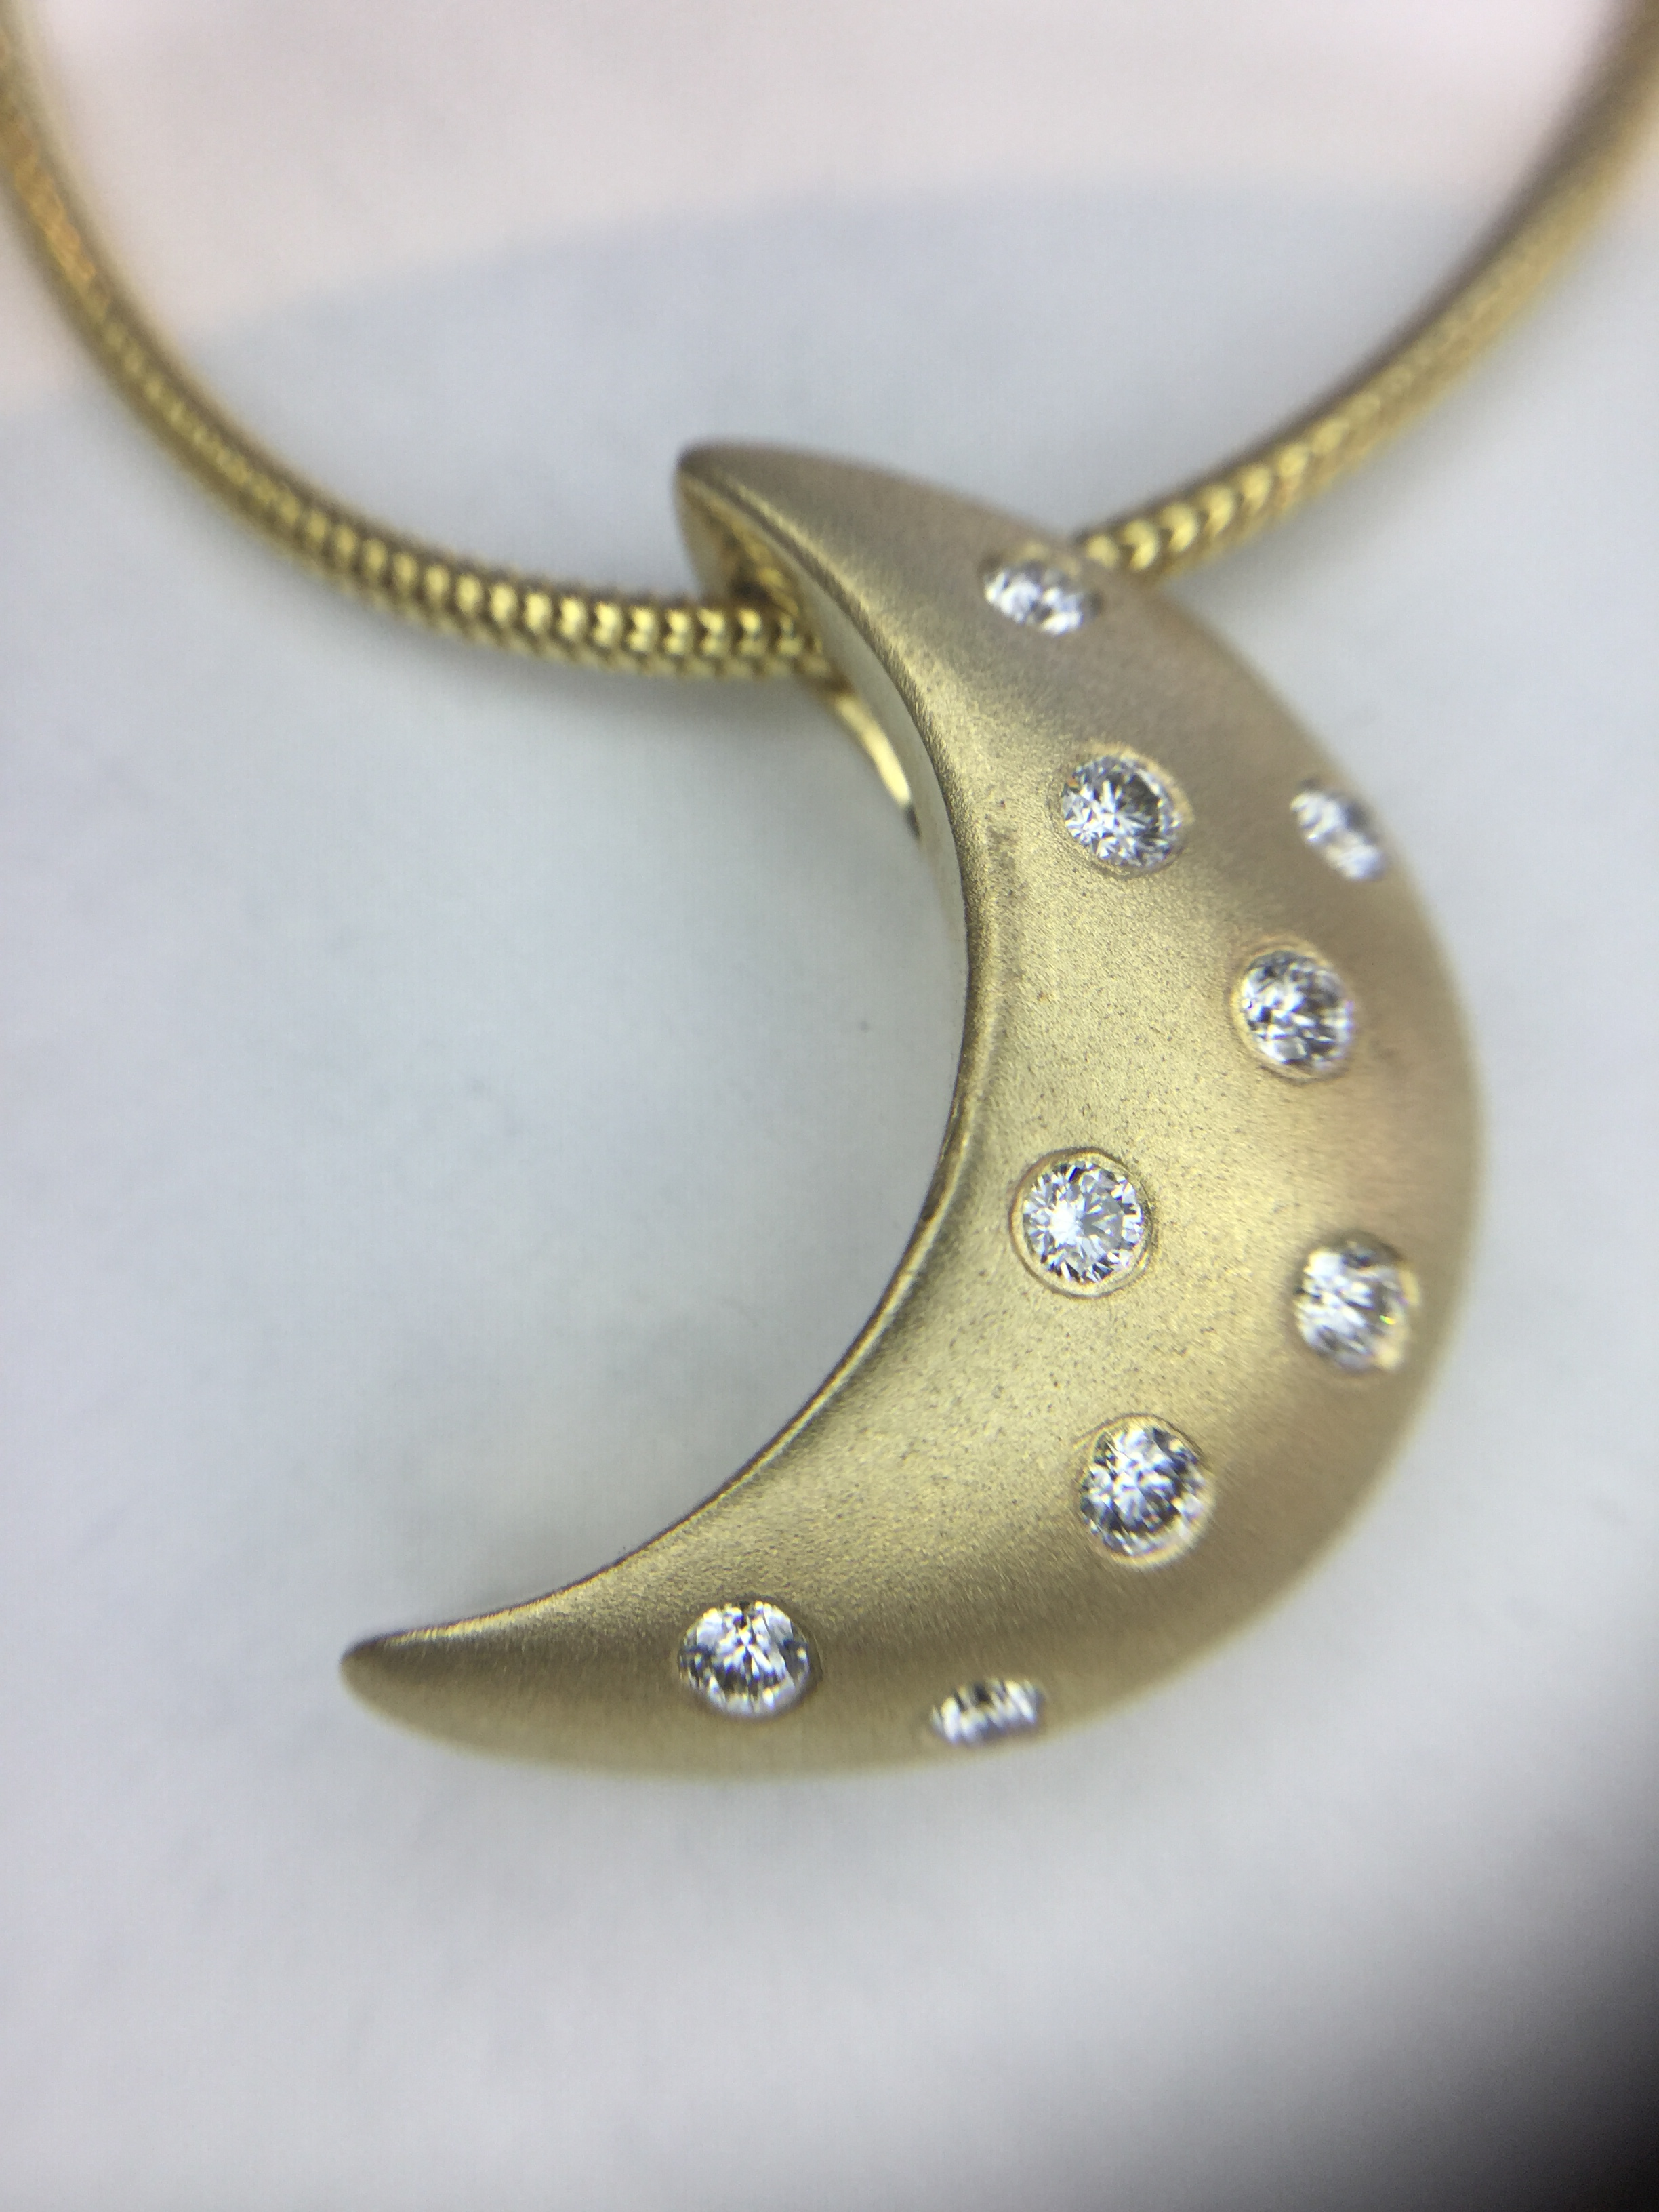 14k Yellow Gold Moonlight Pendant with Diamonds, Large- Matte Finish